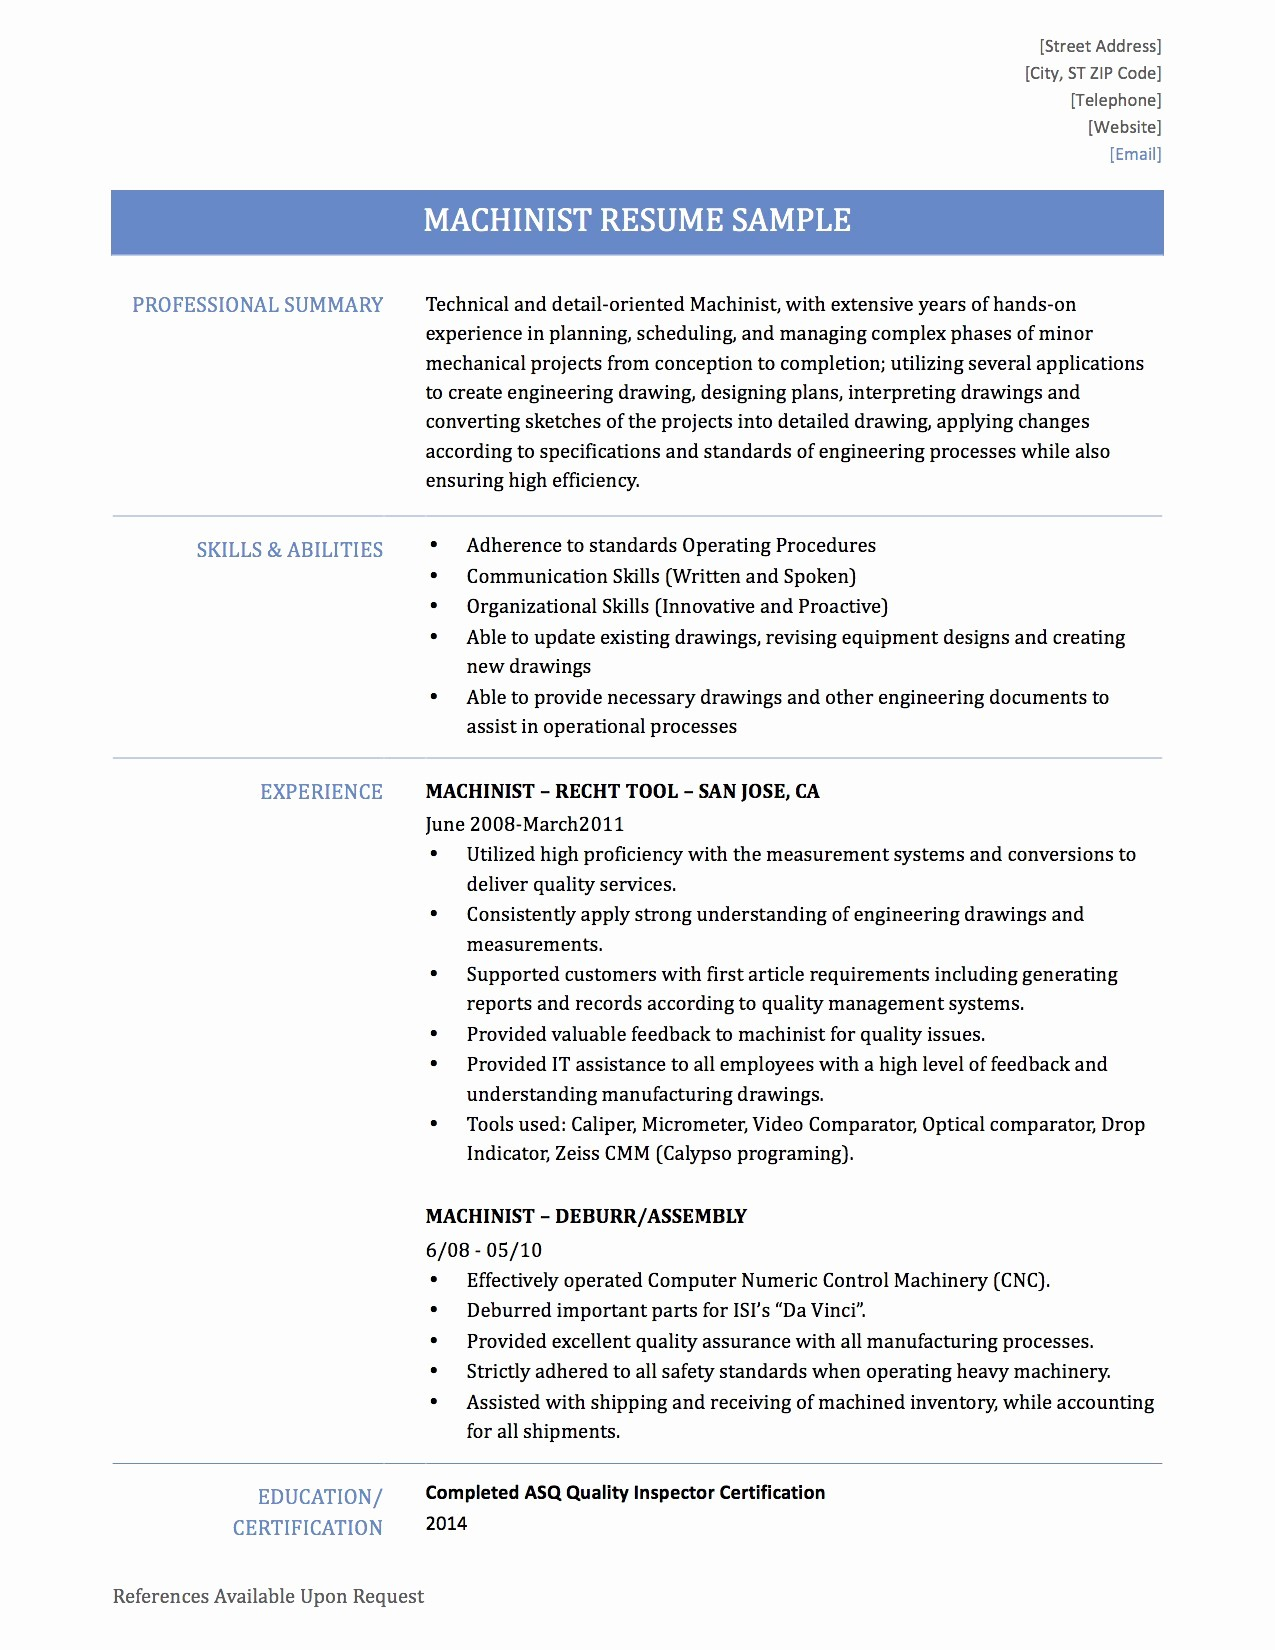 Cnc Machinist Resume - 25 Cnc Machinist Resume